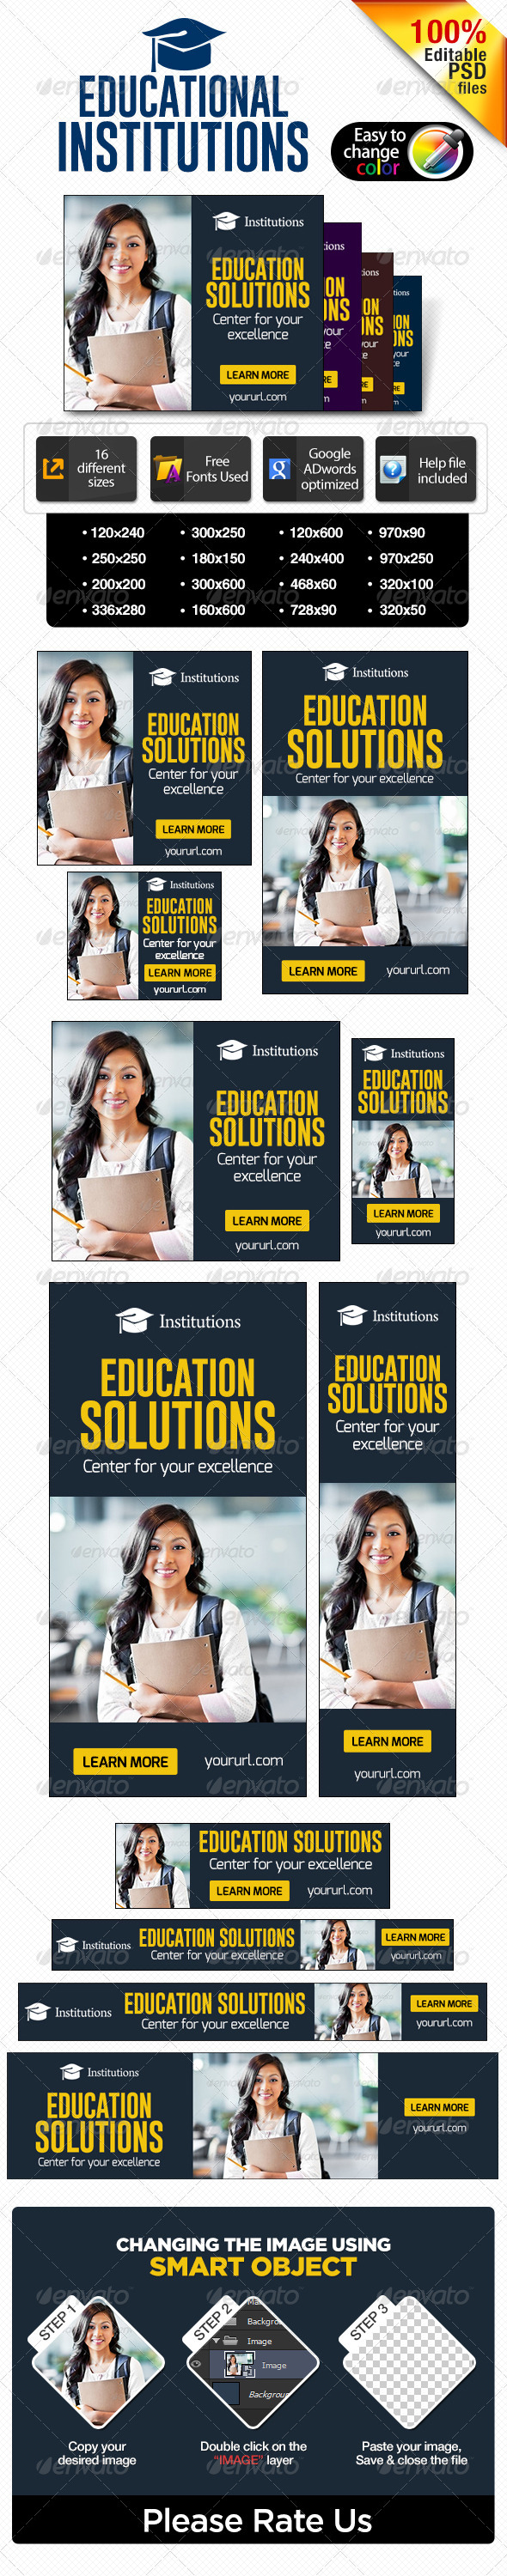 Educational Website Banners Education Indian Banners